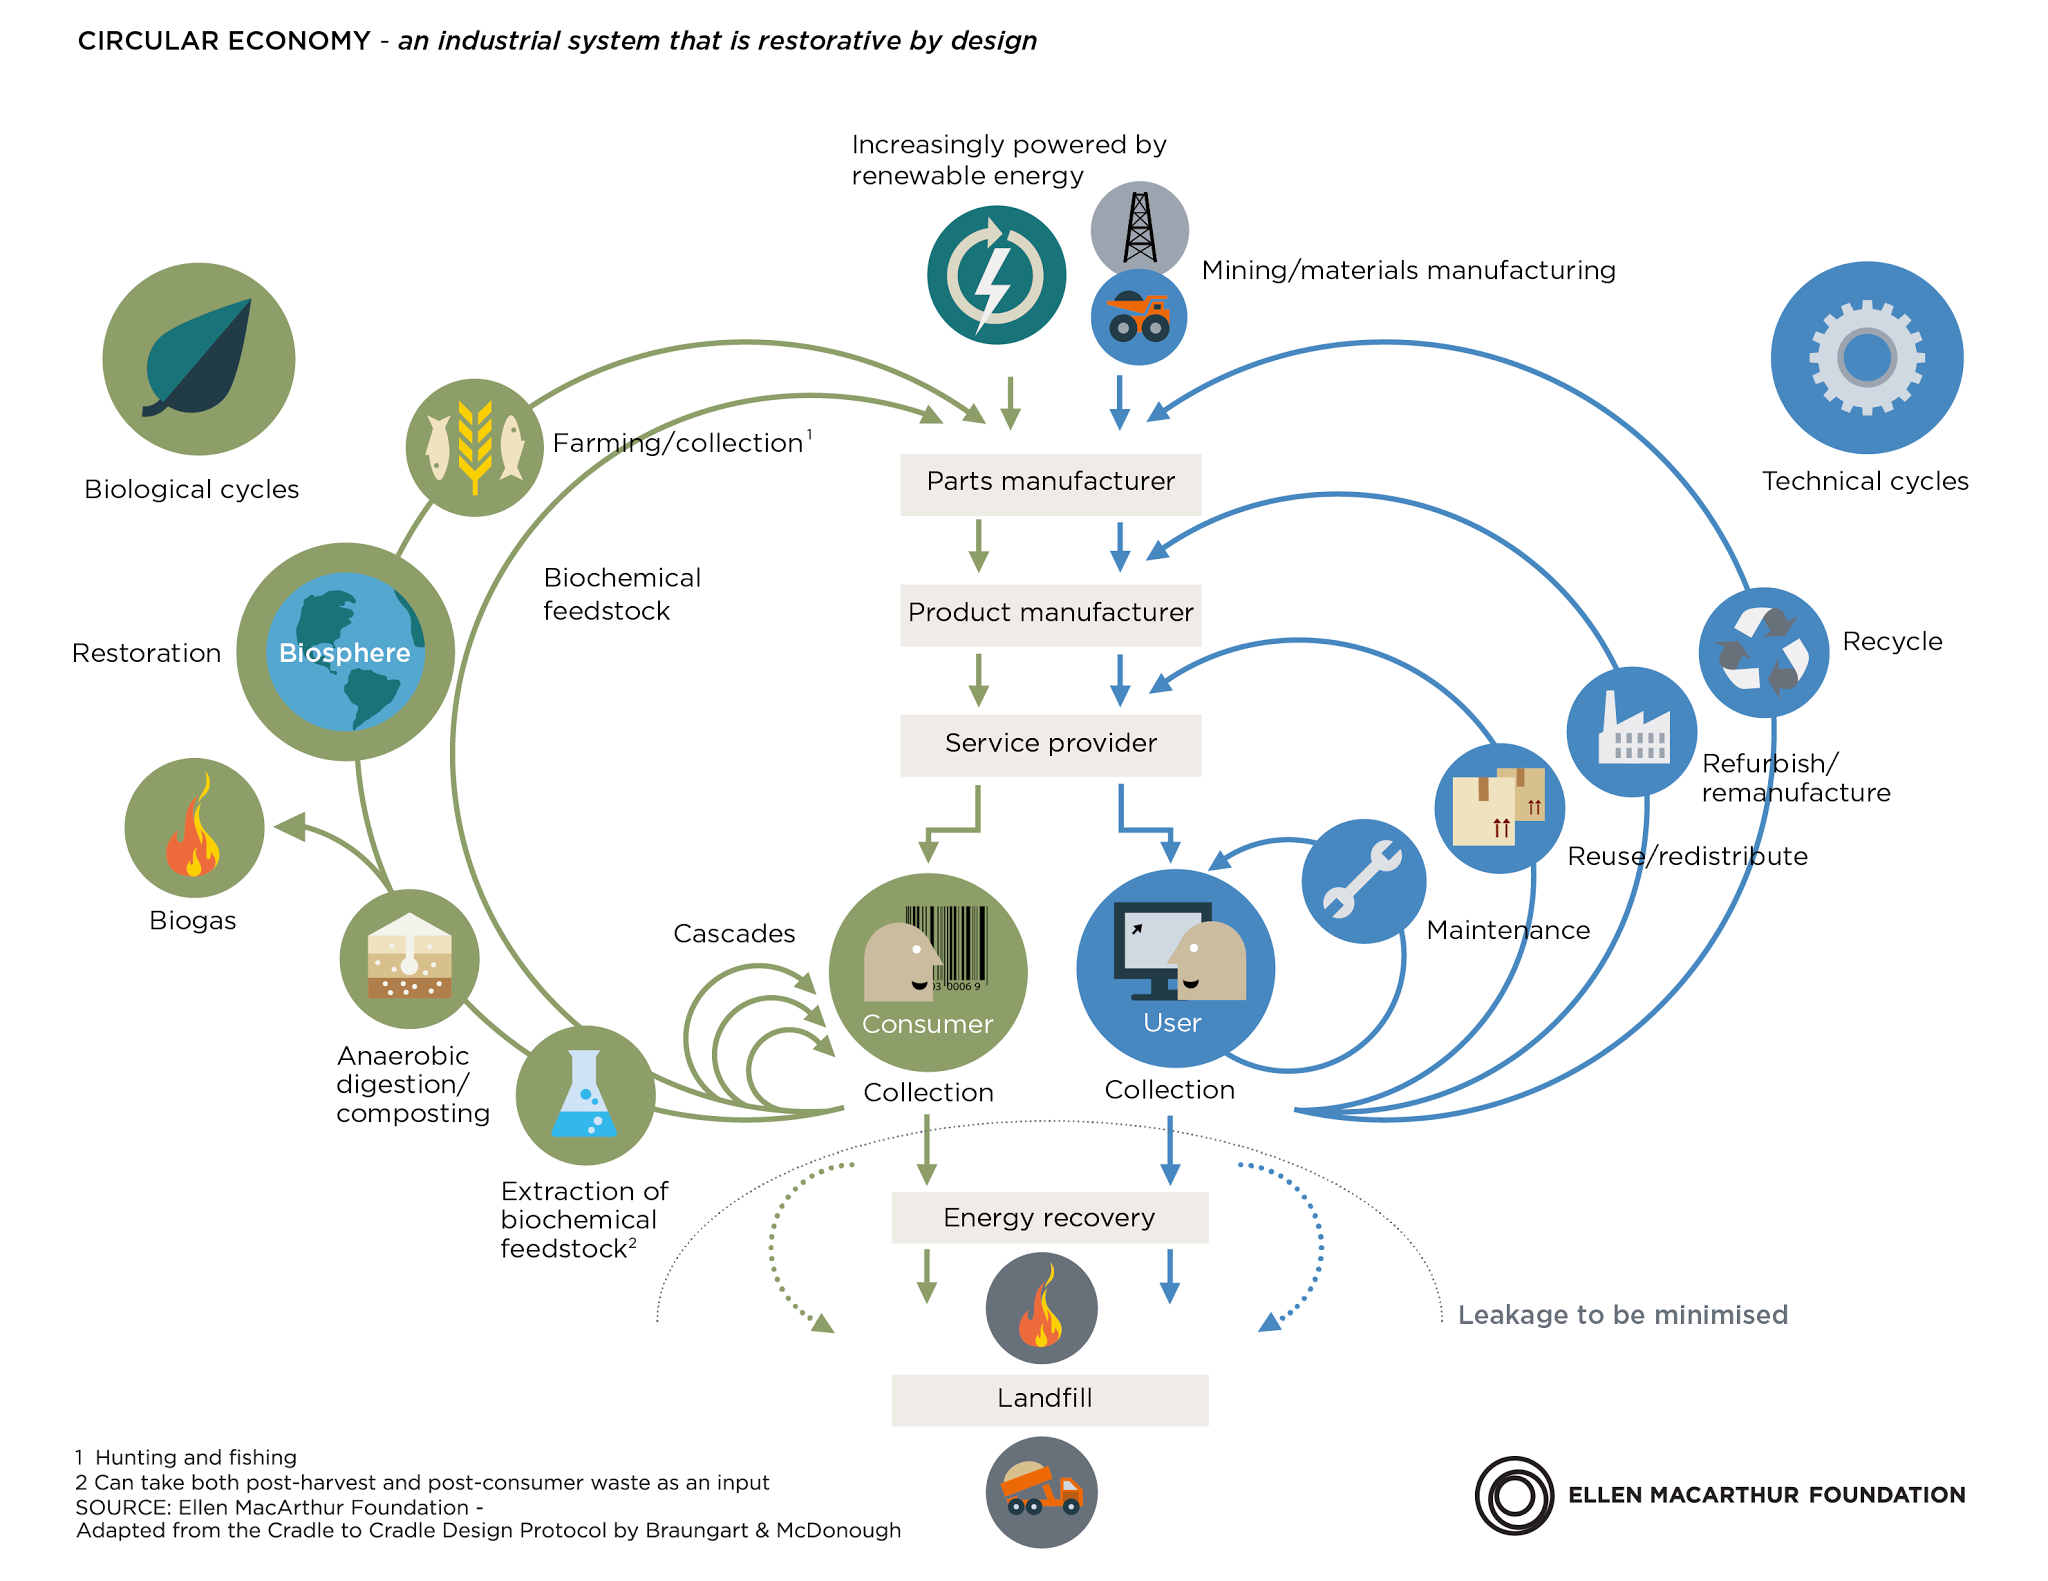 Image and Text Credit: Ellen MacArthur Foundation  This graphic demonstrates several things: • There are two defined material flows - biological and technical • There are two categories of customers - consumers (biological materials) and users (technical materials) • In the technical cycle, the closer the loop is to the user, the more profitable the action. Thus repairing products is a more profitable action than, say, recycling. For information about the above graphic and more, see:  https://www.ellenmacarthurfoundation.org/circular-economy/infographic